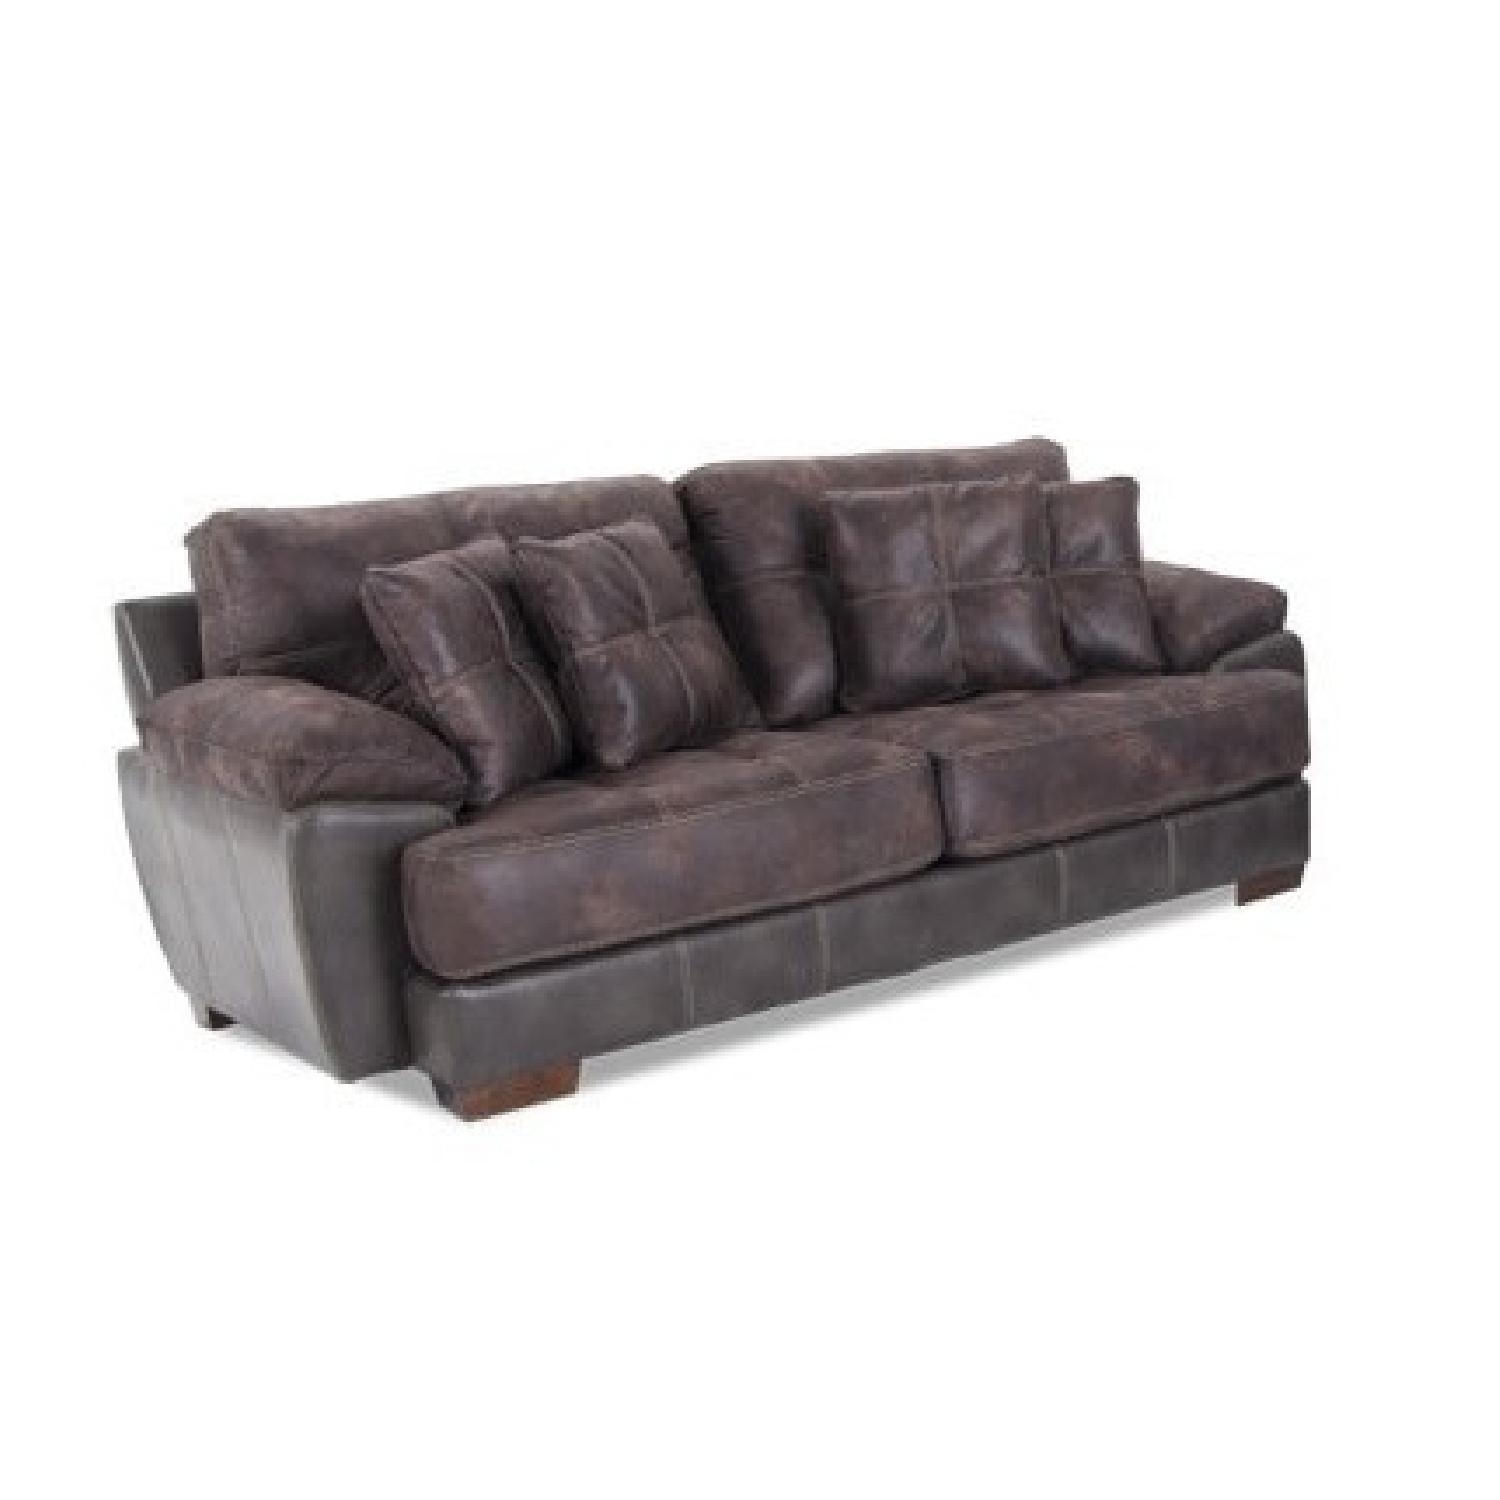 Bob's Bob-o-pedic Suede/Leather Sofa - image-0